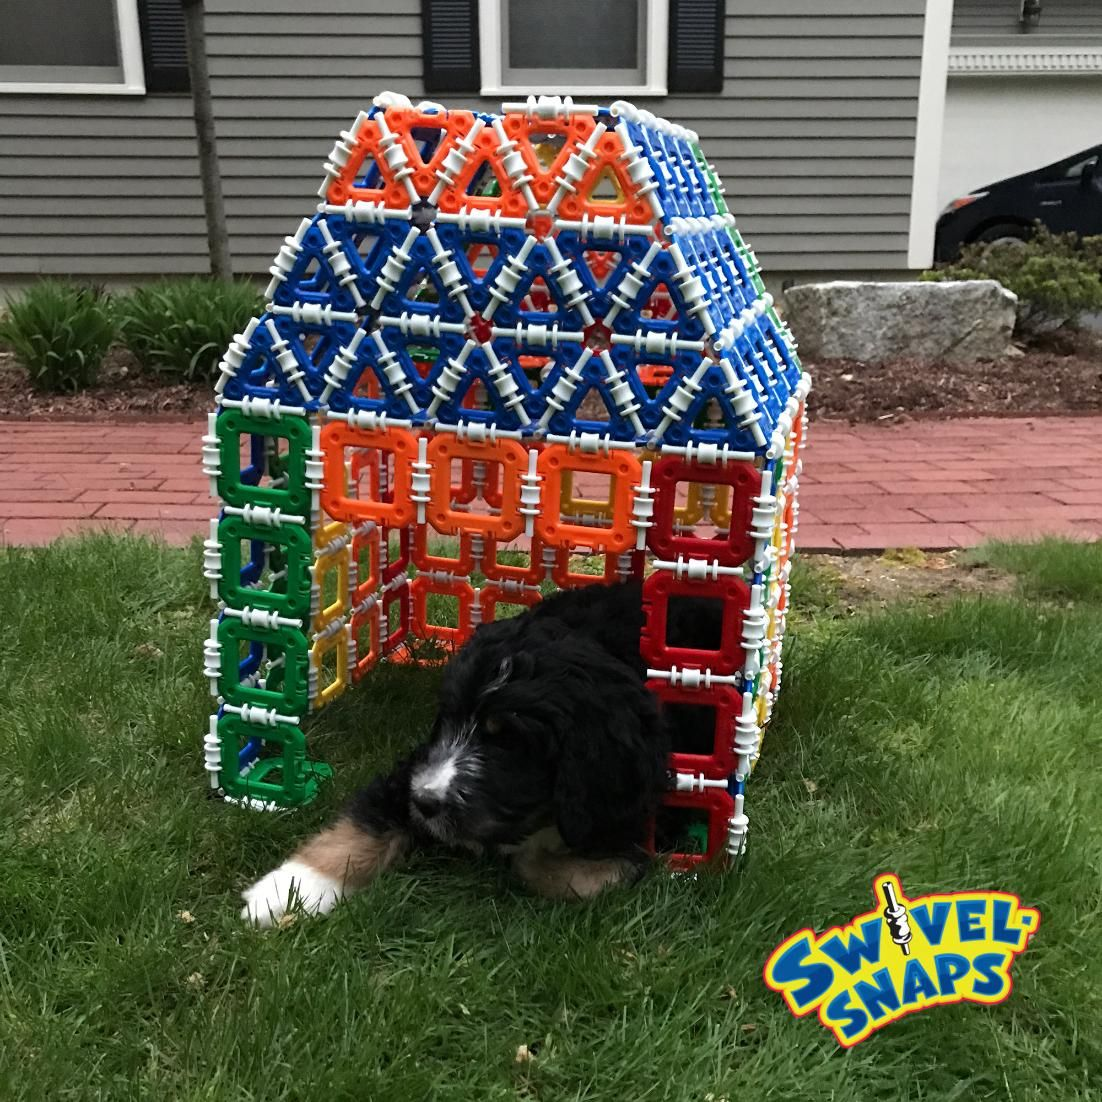 Our K-9 friends love Swivel-Snaps too! #HomeSweetHome #toys #STEM